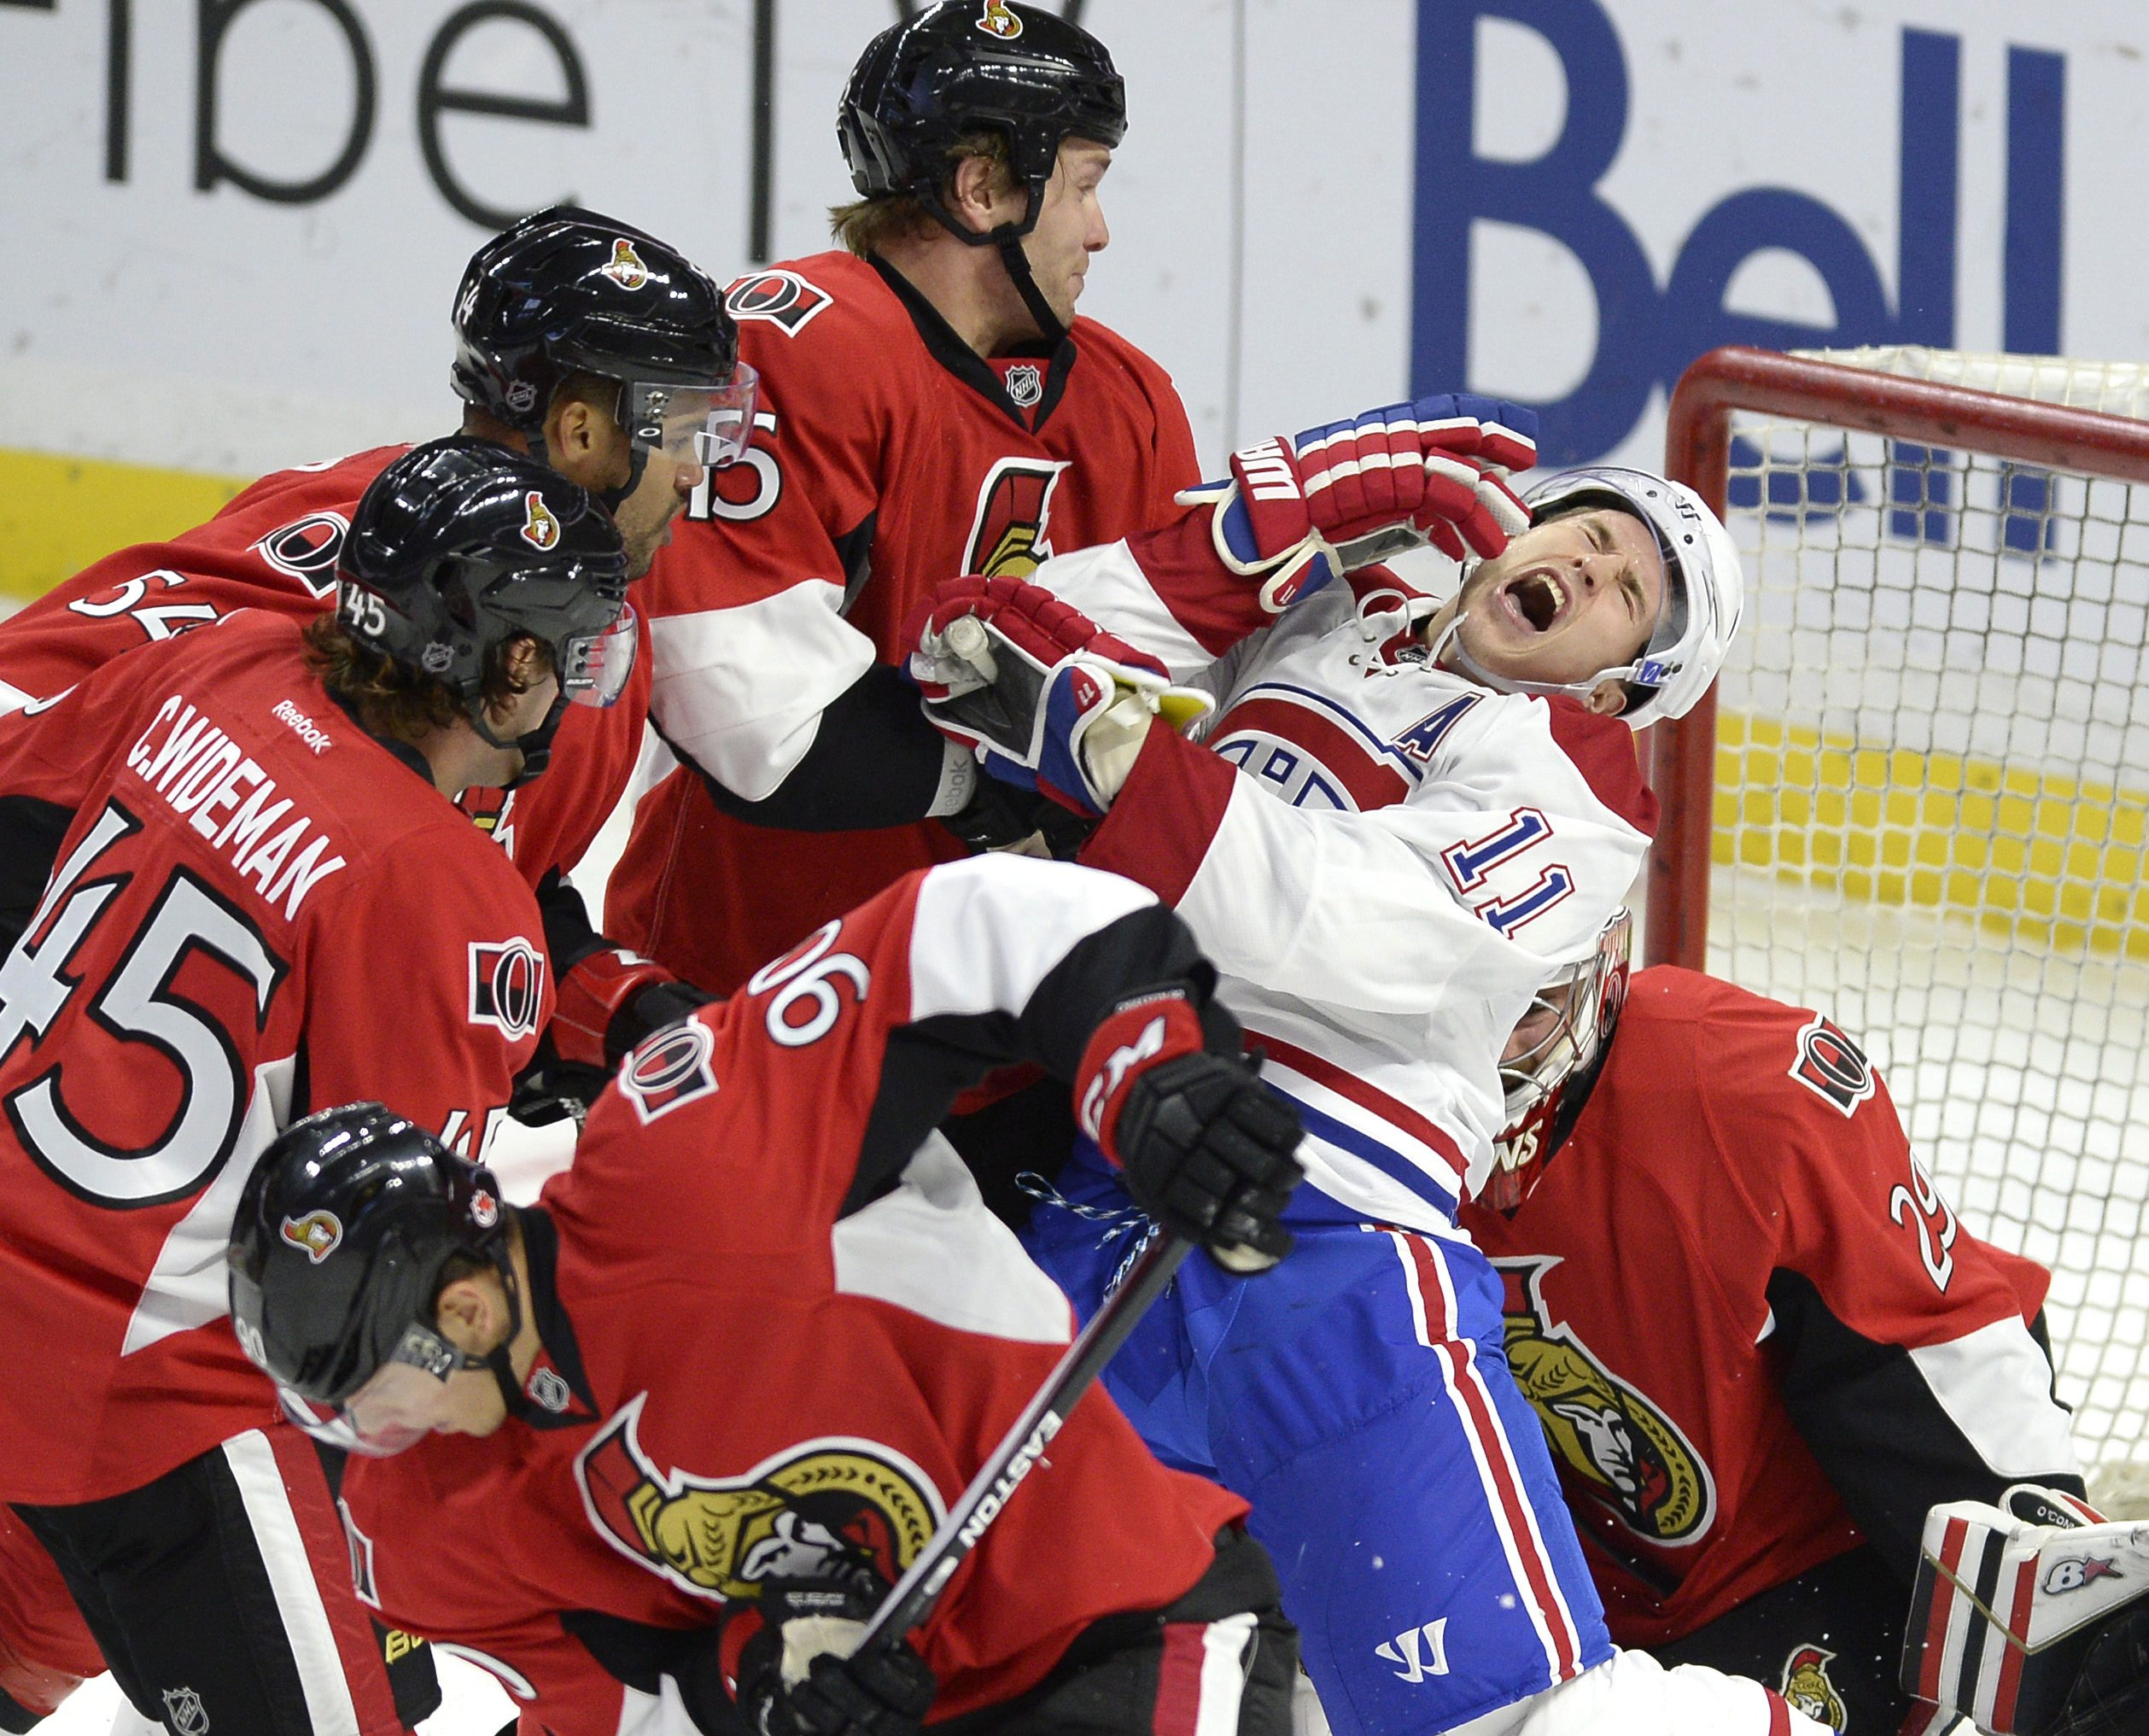 Montreal Canadiens' Brendan Gallagher (11) reacts as Ottawa Senators' Zack Smith (15) draws a roughing penalty in the Senators crease during the first period of a pre-season NHL hockey game, Saturday Oct. 3, 2015, in Ottawa, Ontario. (Justin Tang /The Can